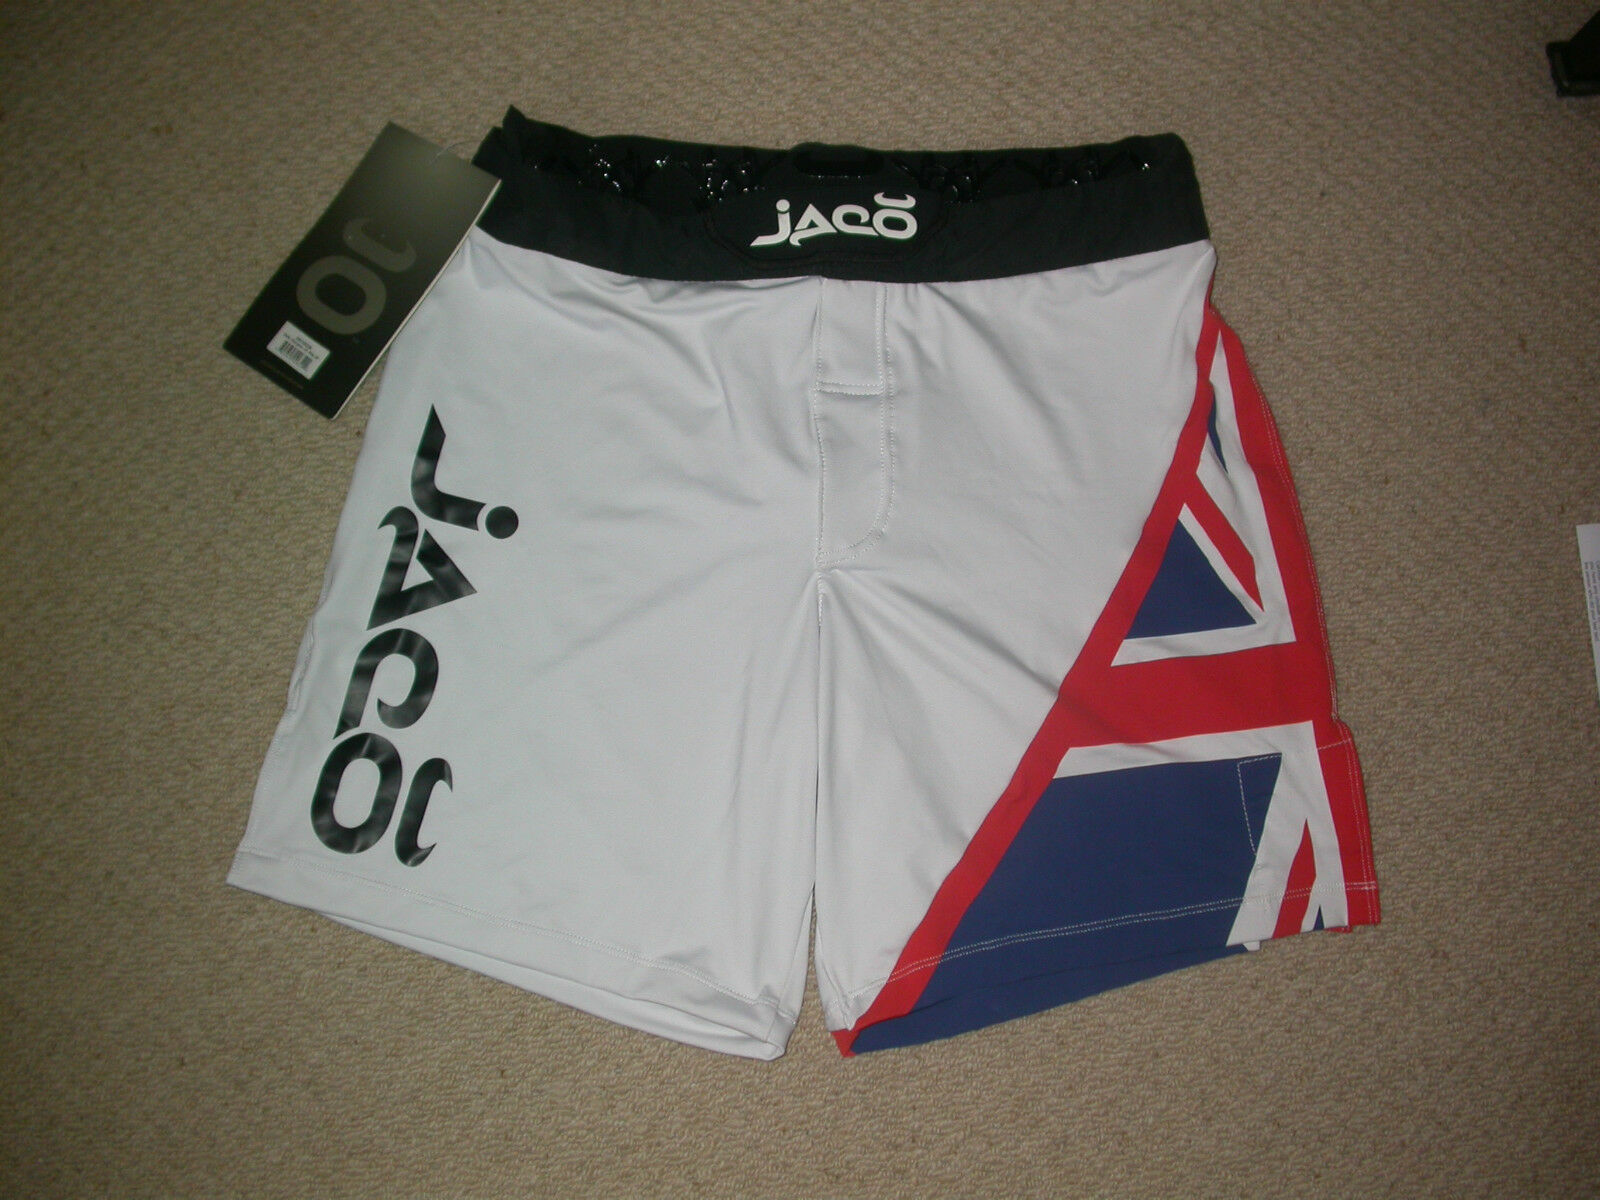 JACO SHORTS 38W EXTRA LARGE XL . MMA BJJ JIU JITSU UFC MUAY THAI BOXING GYM NEW